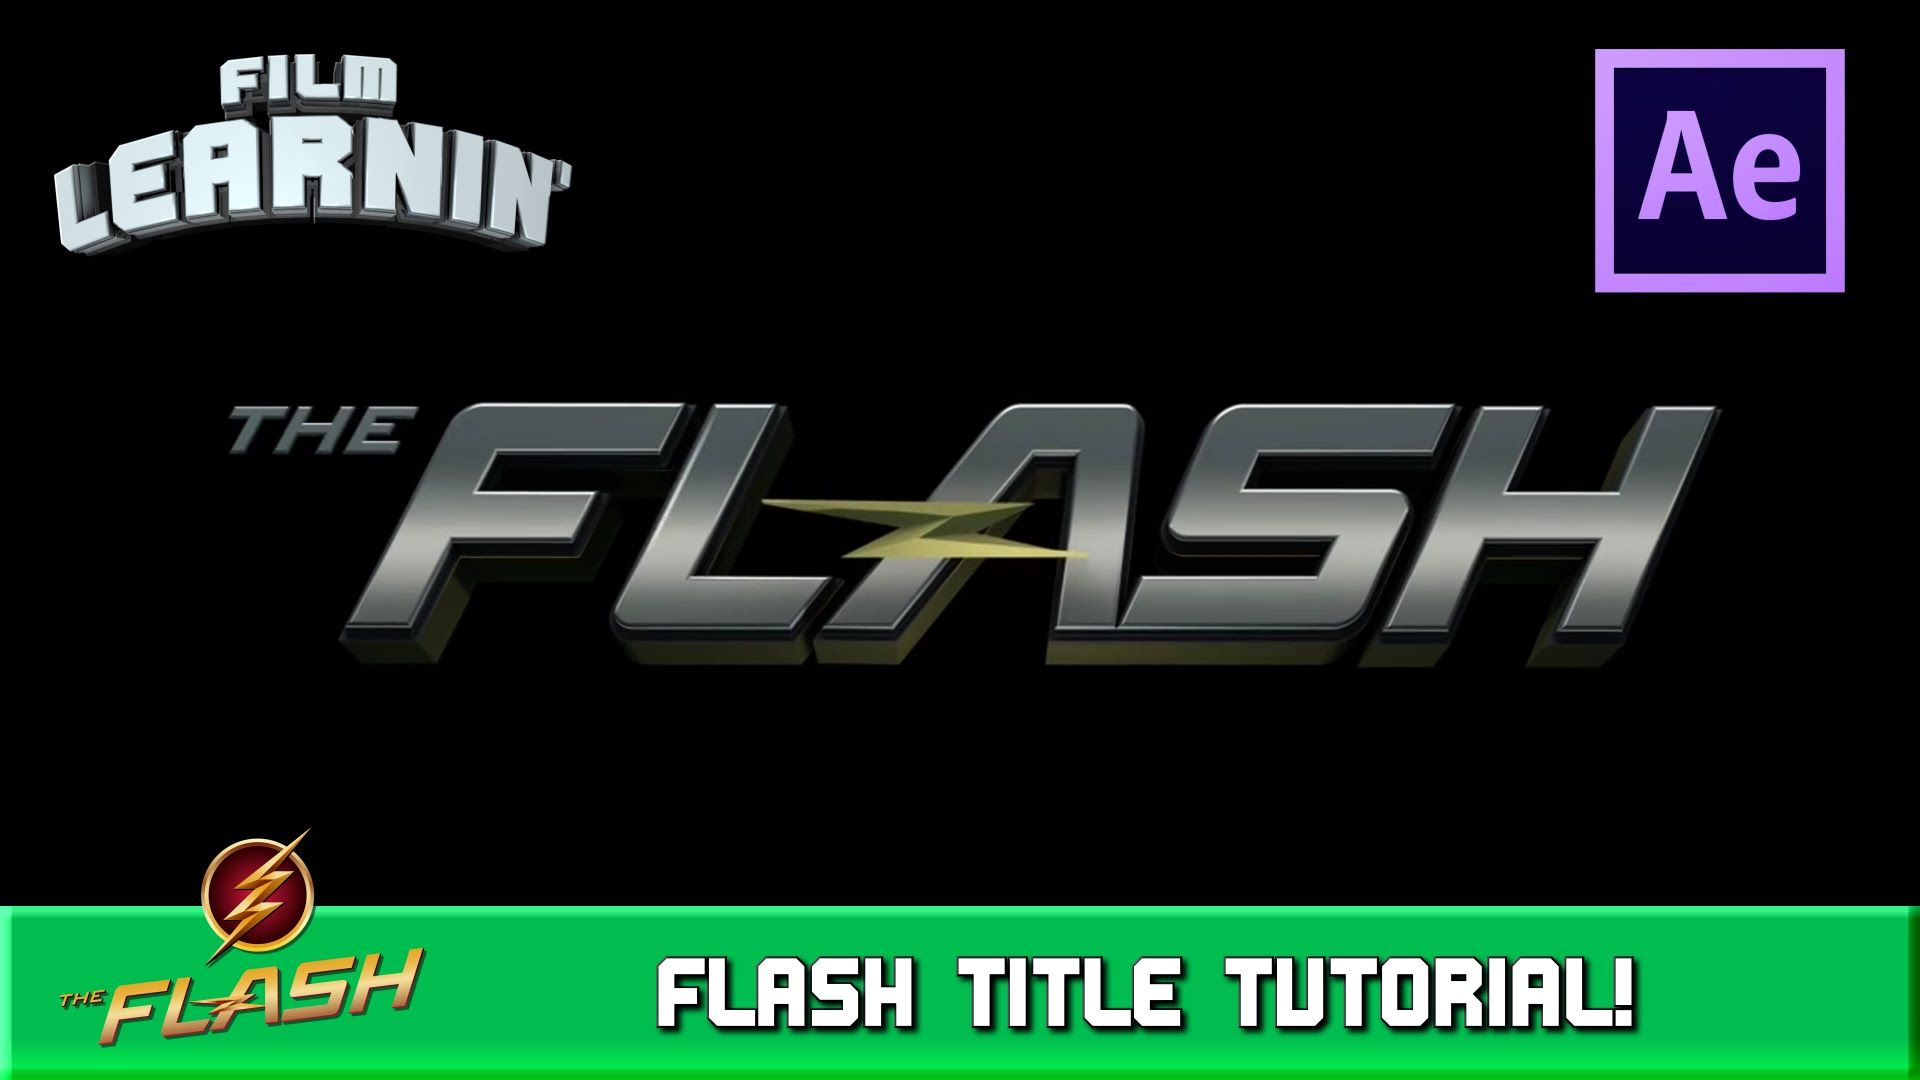 The Flash Title After Effects Tutorial! | Film Learnin | After ...